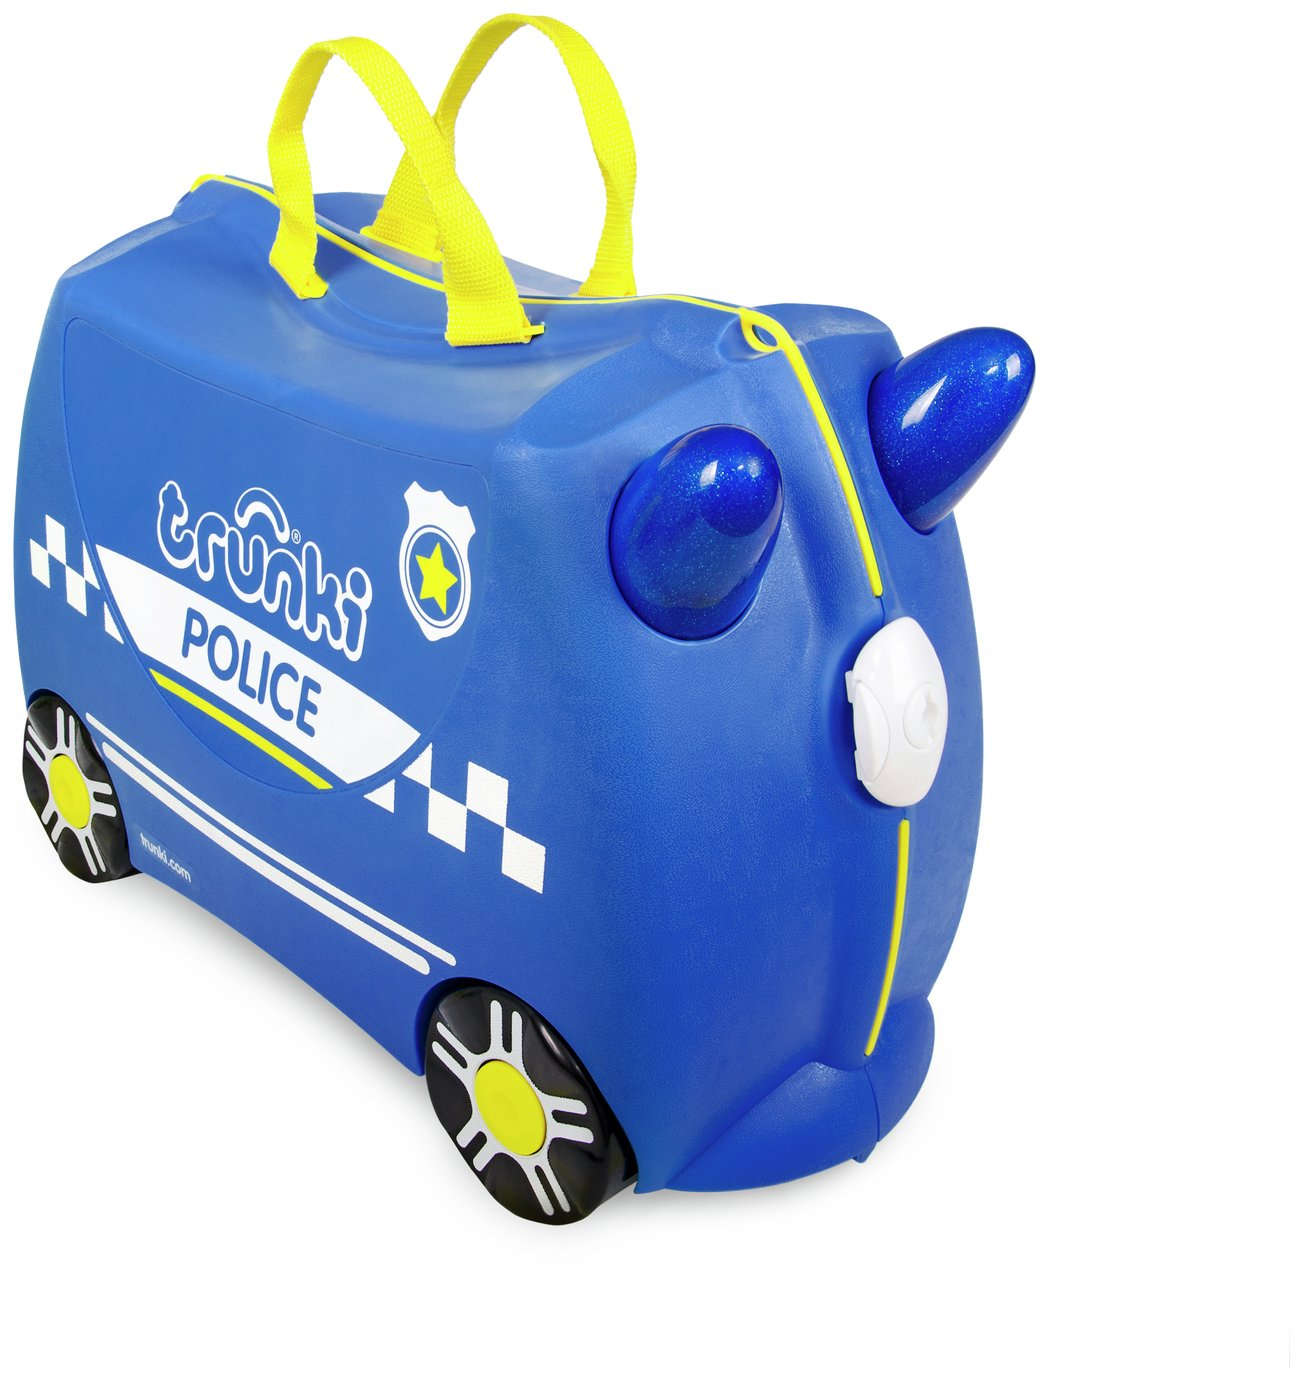 Trunki Percy the Police Car Ride-On Suitcase from Trunki